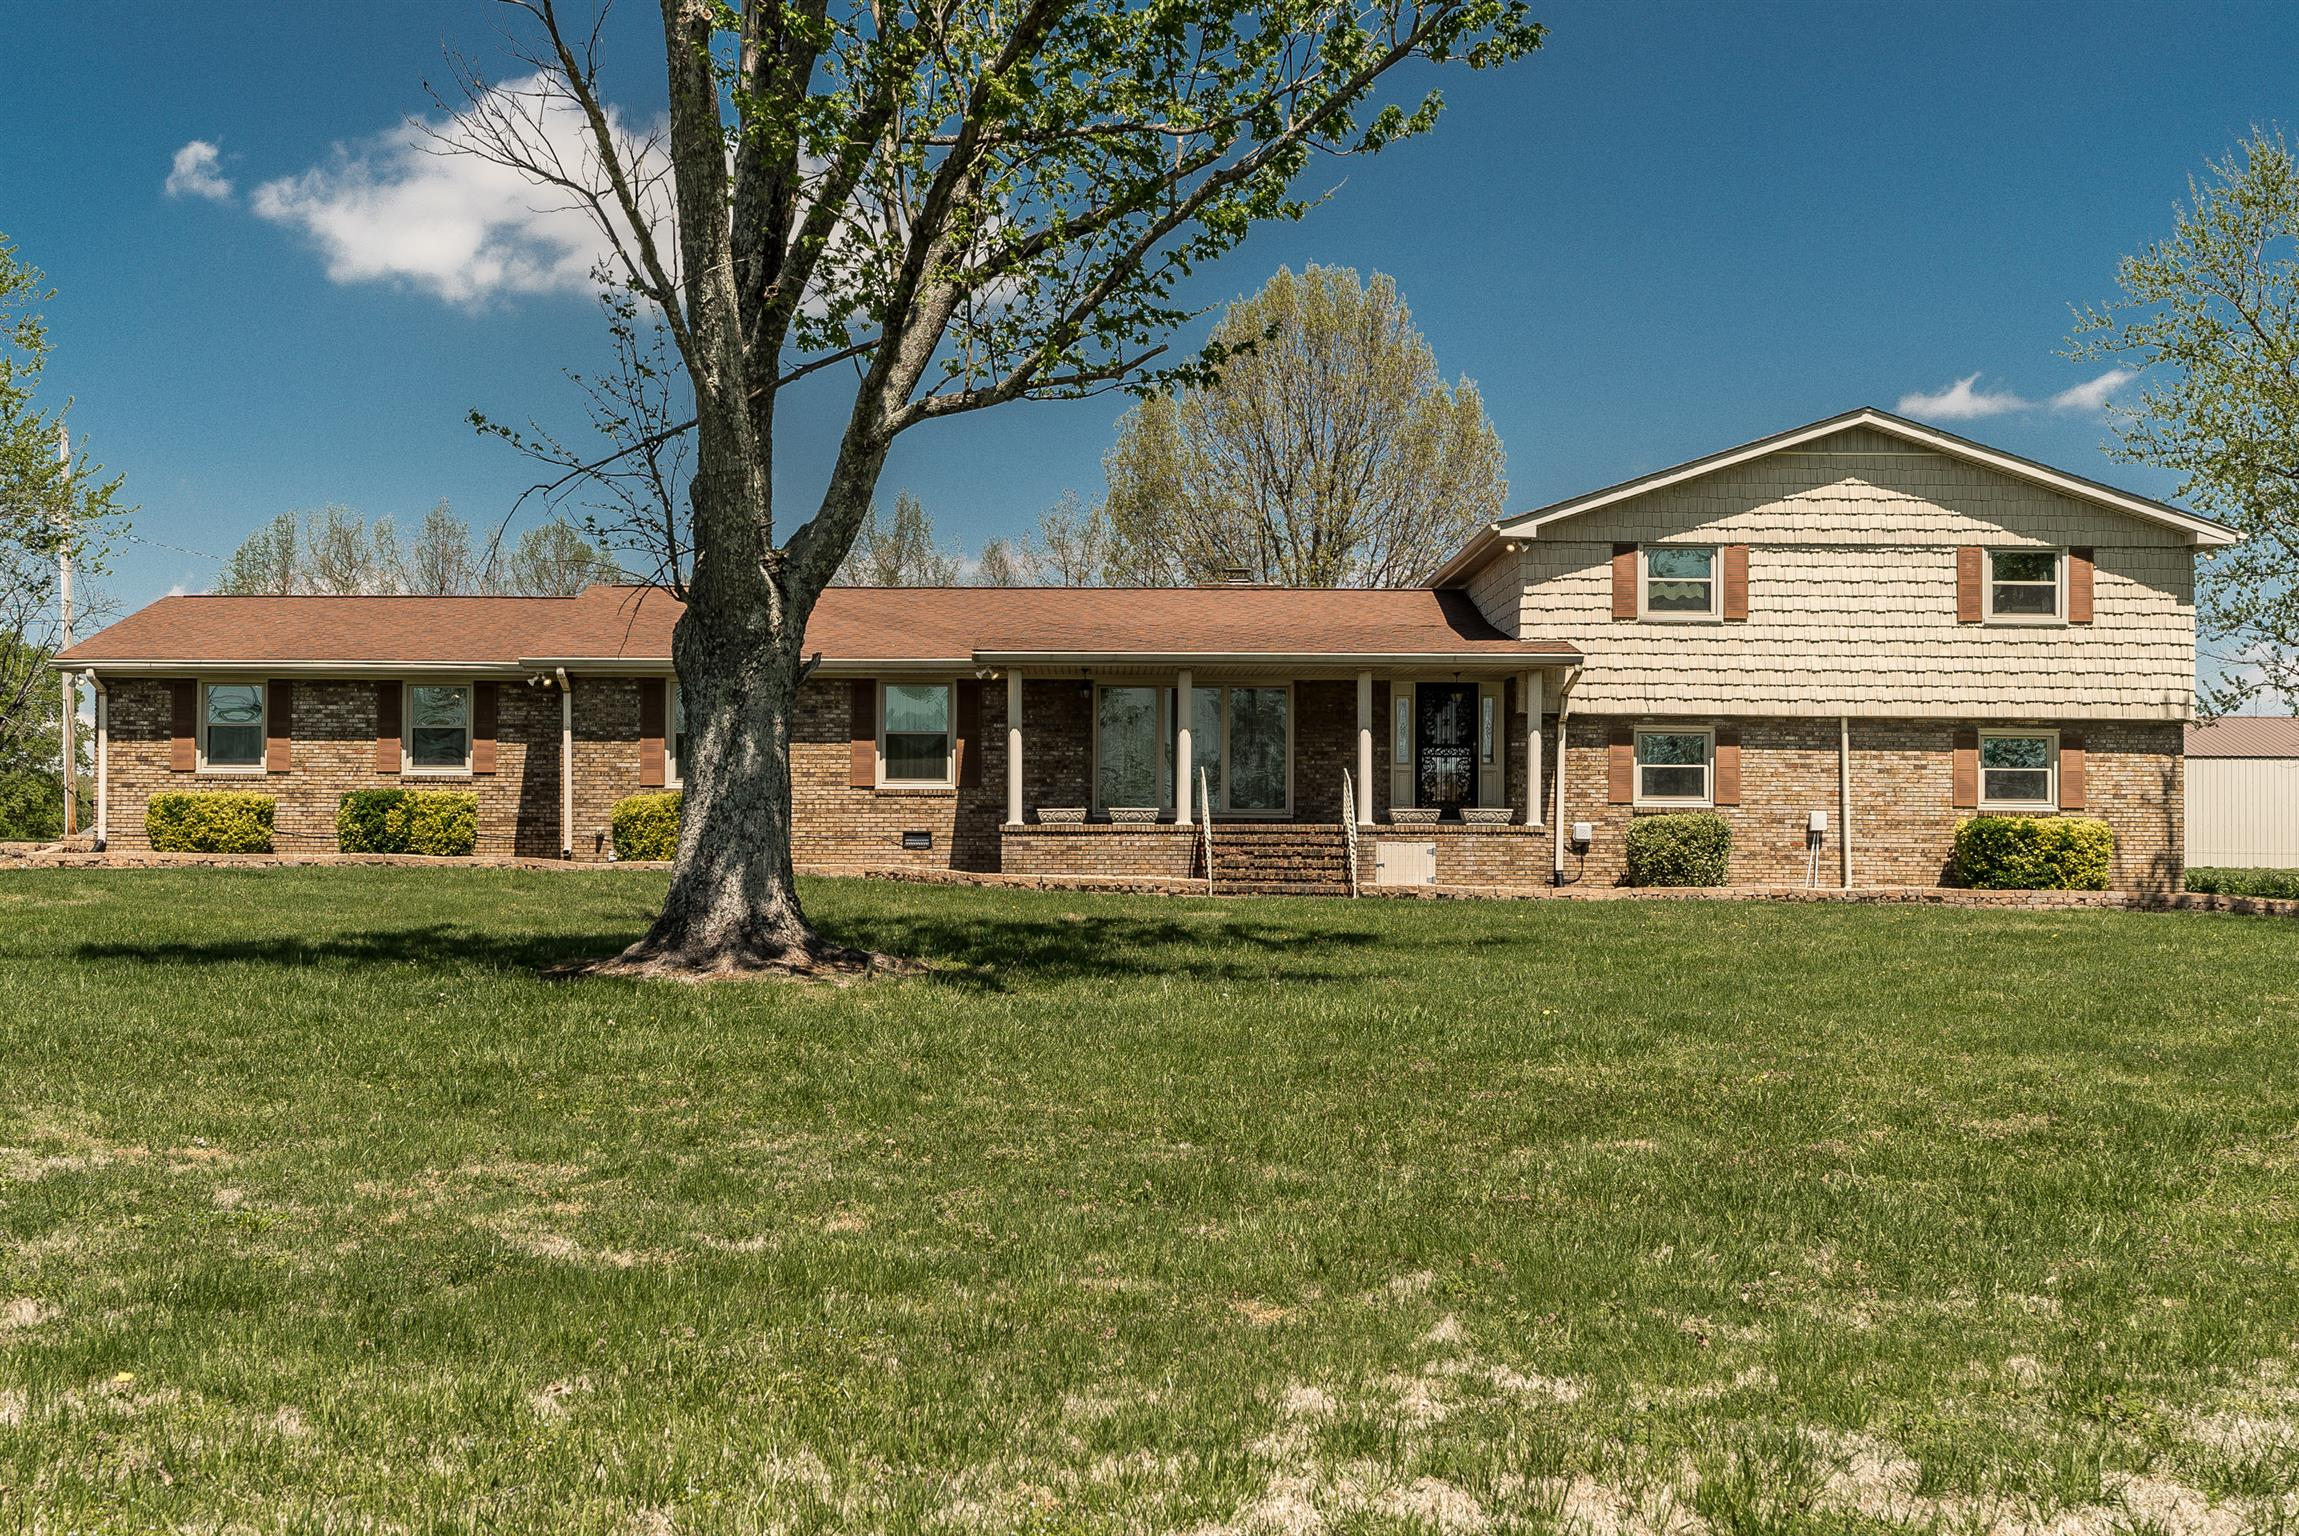 $467,500 - 6Br/5Ba -  for Sale in None, Goodlettsville